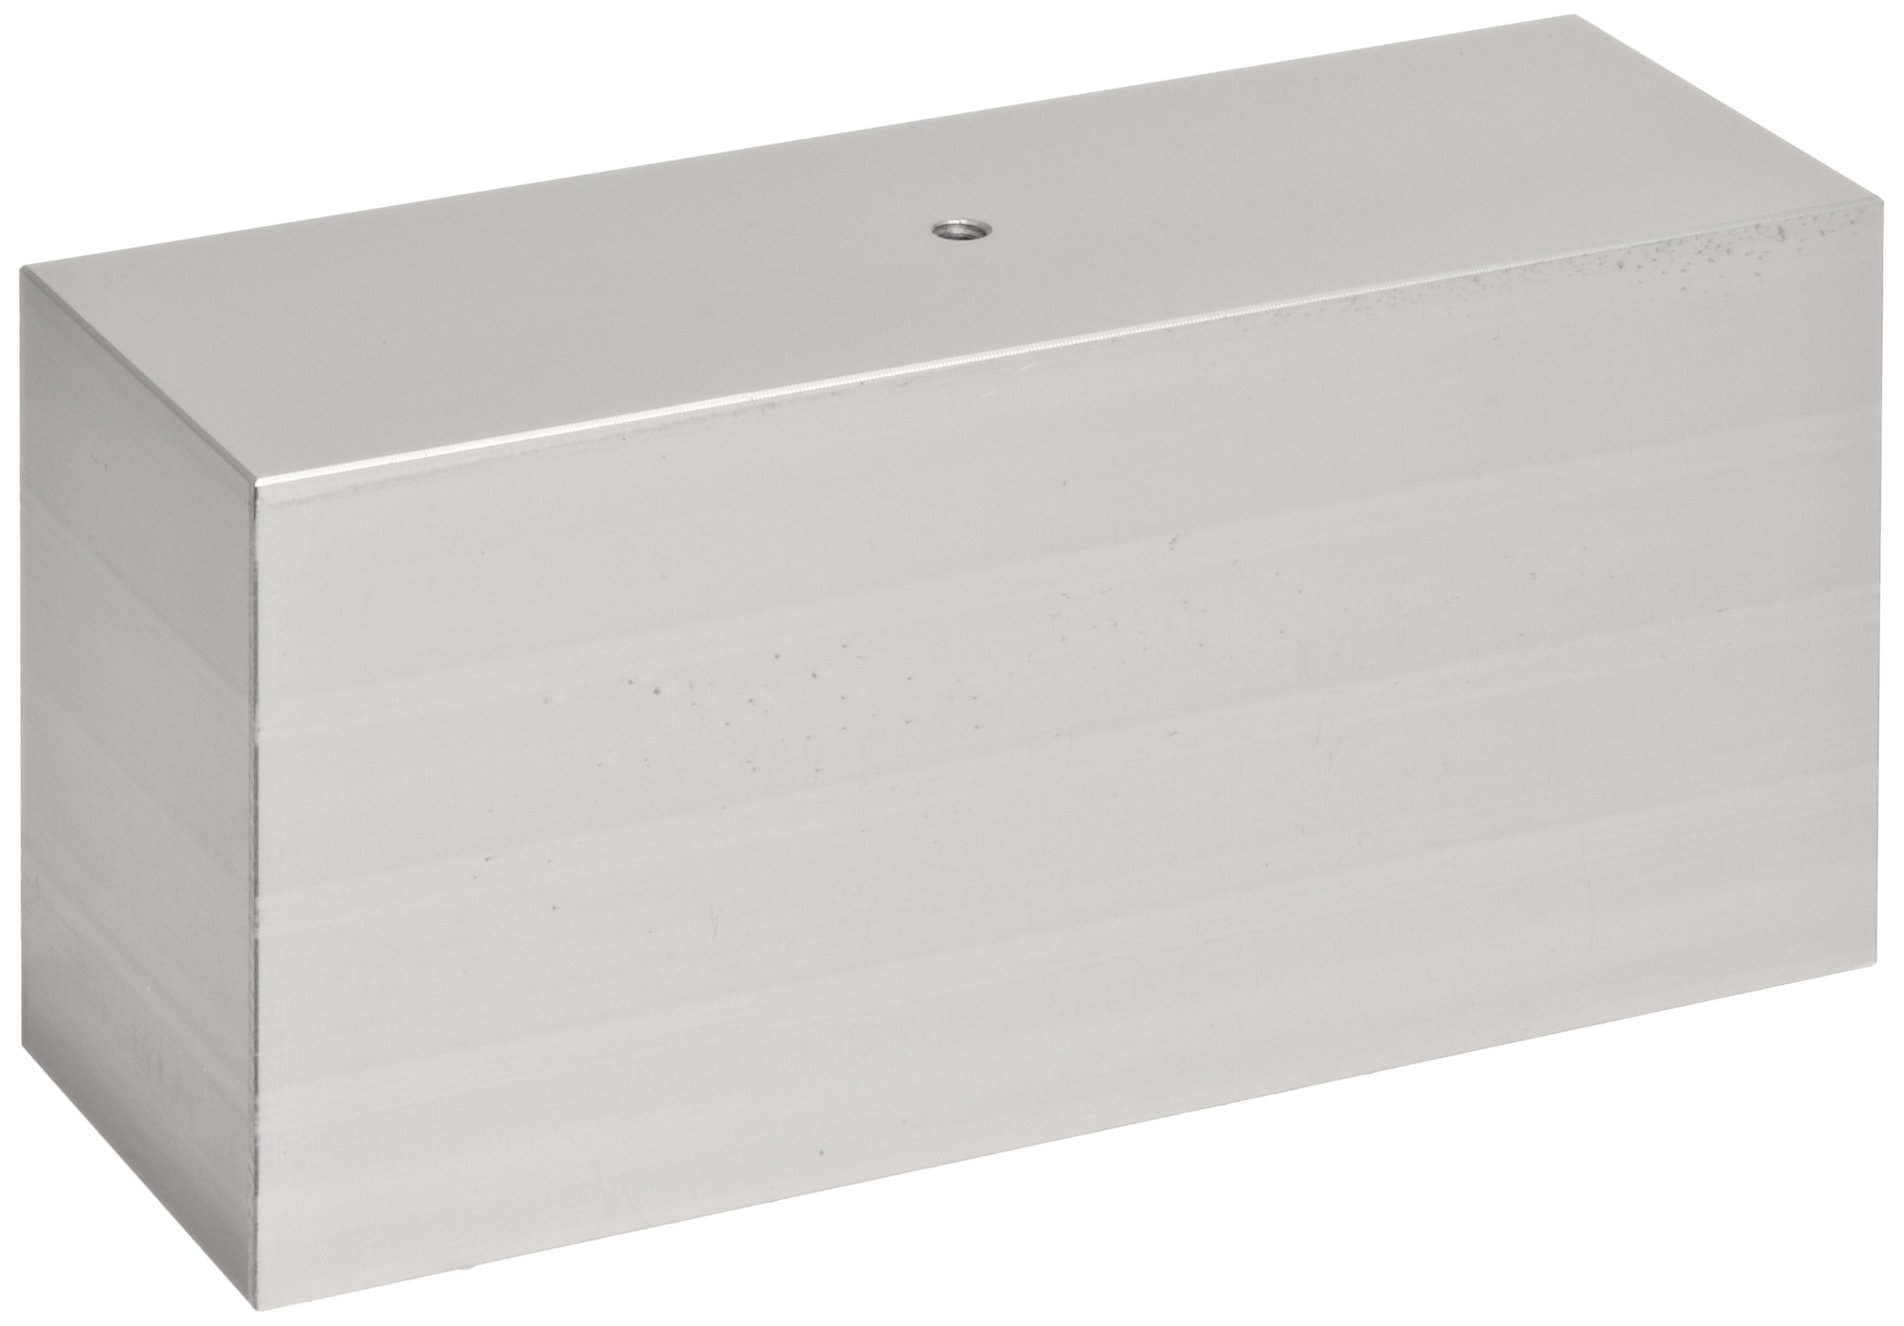 Grant Instruments QB-0 Blank, Aluminium, Interchangeable Heating Block for QB Range of Dry Block Heating Systems